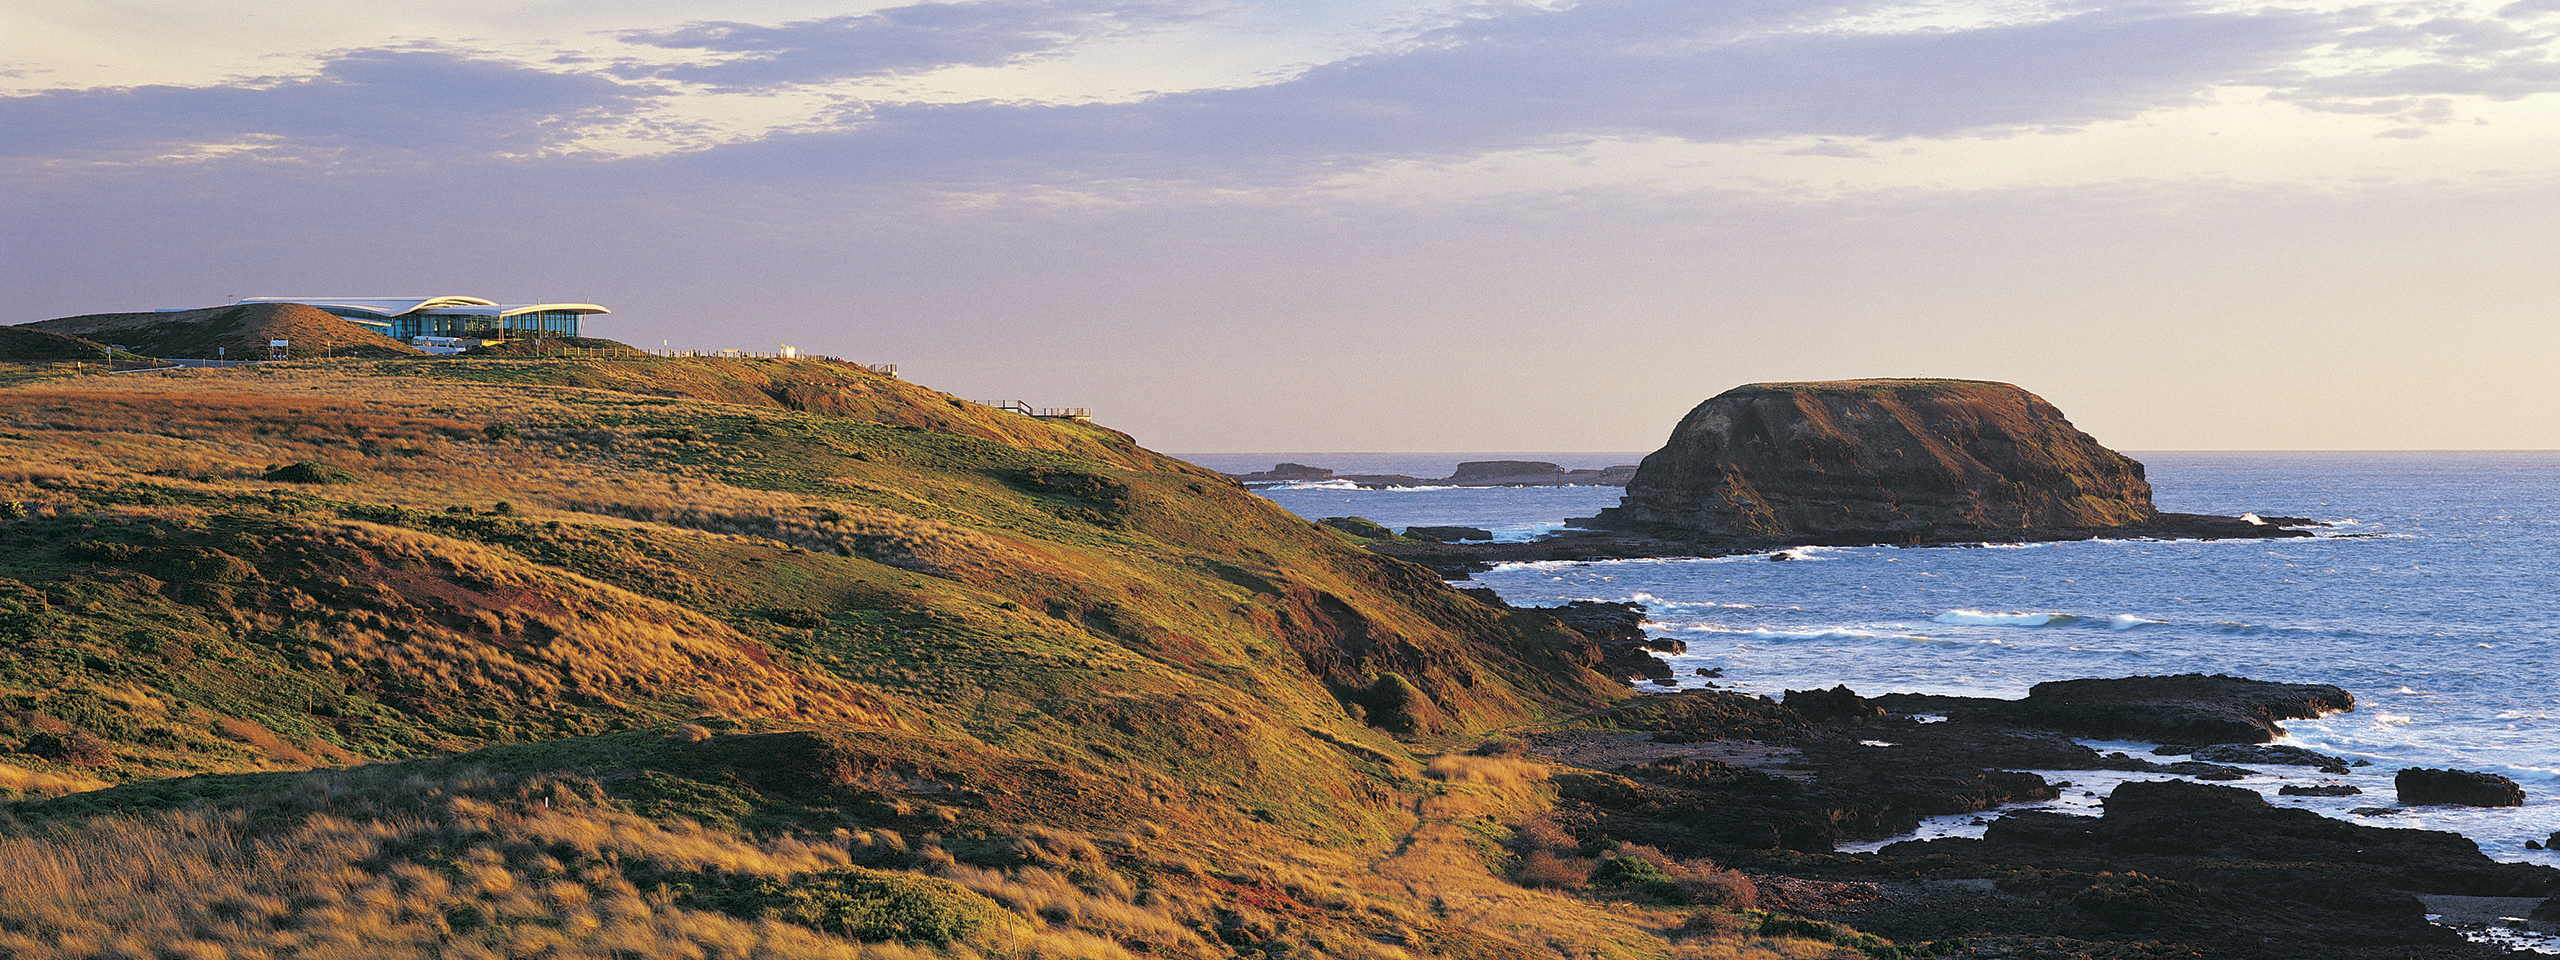 Nobbies, Phillip Island